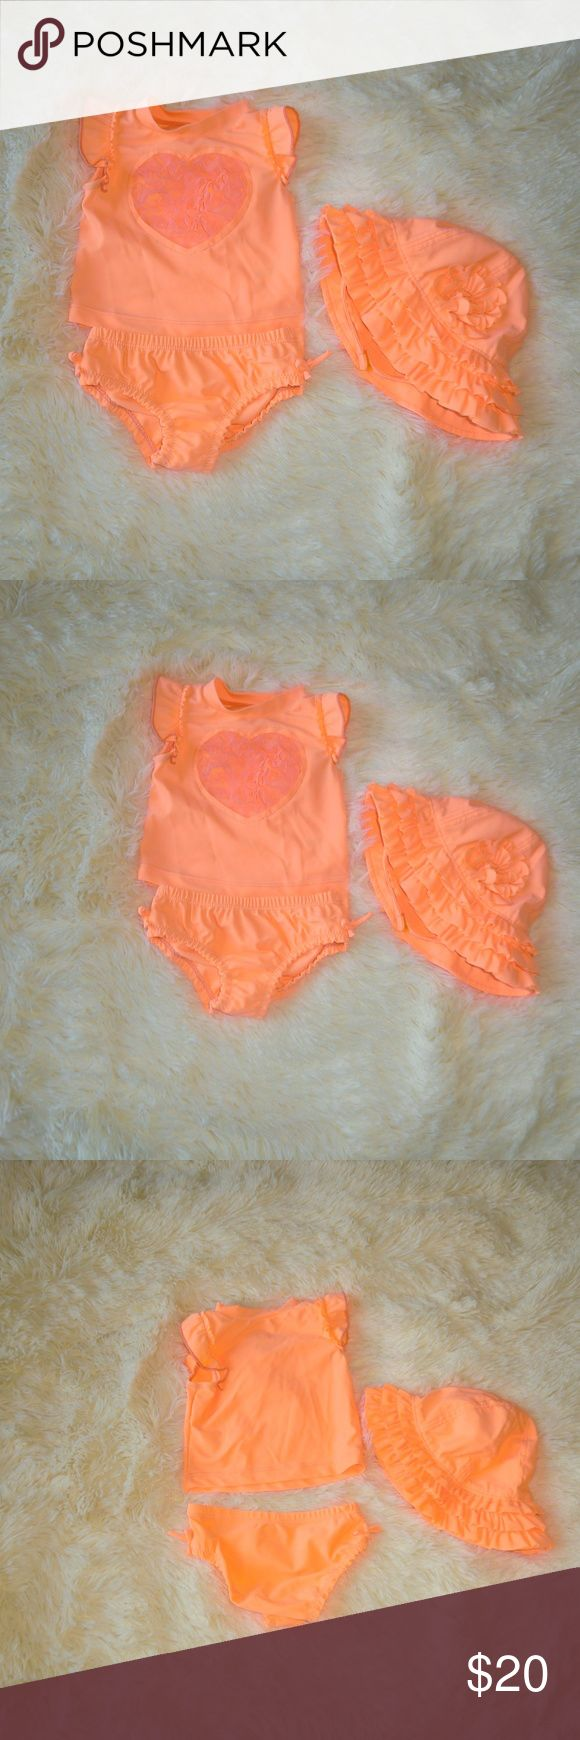 Koala Kids Bright Coral Orange Tankini Hat Set Adorable Koala Kids bright orange coral tankini set with matching hat in size 3-6 months.  Top has a heart with flouncy mesh center.  Hat has ruffles and flower. Koala Kids Swim